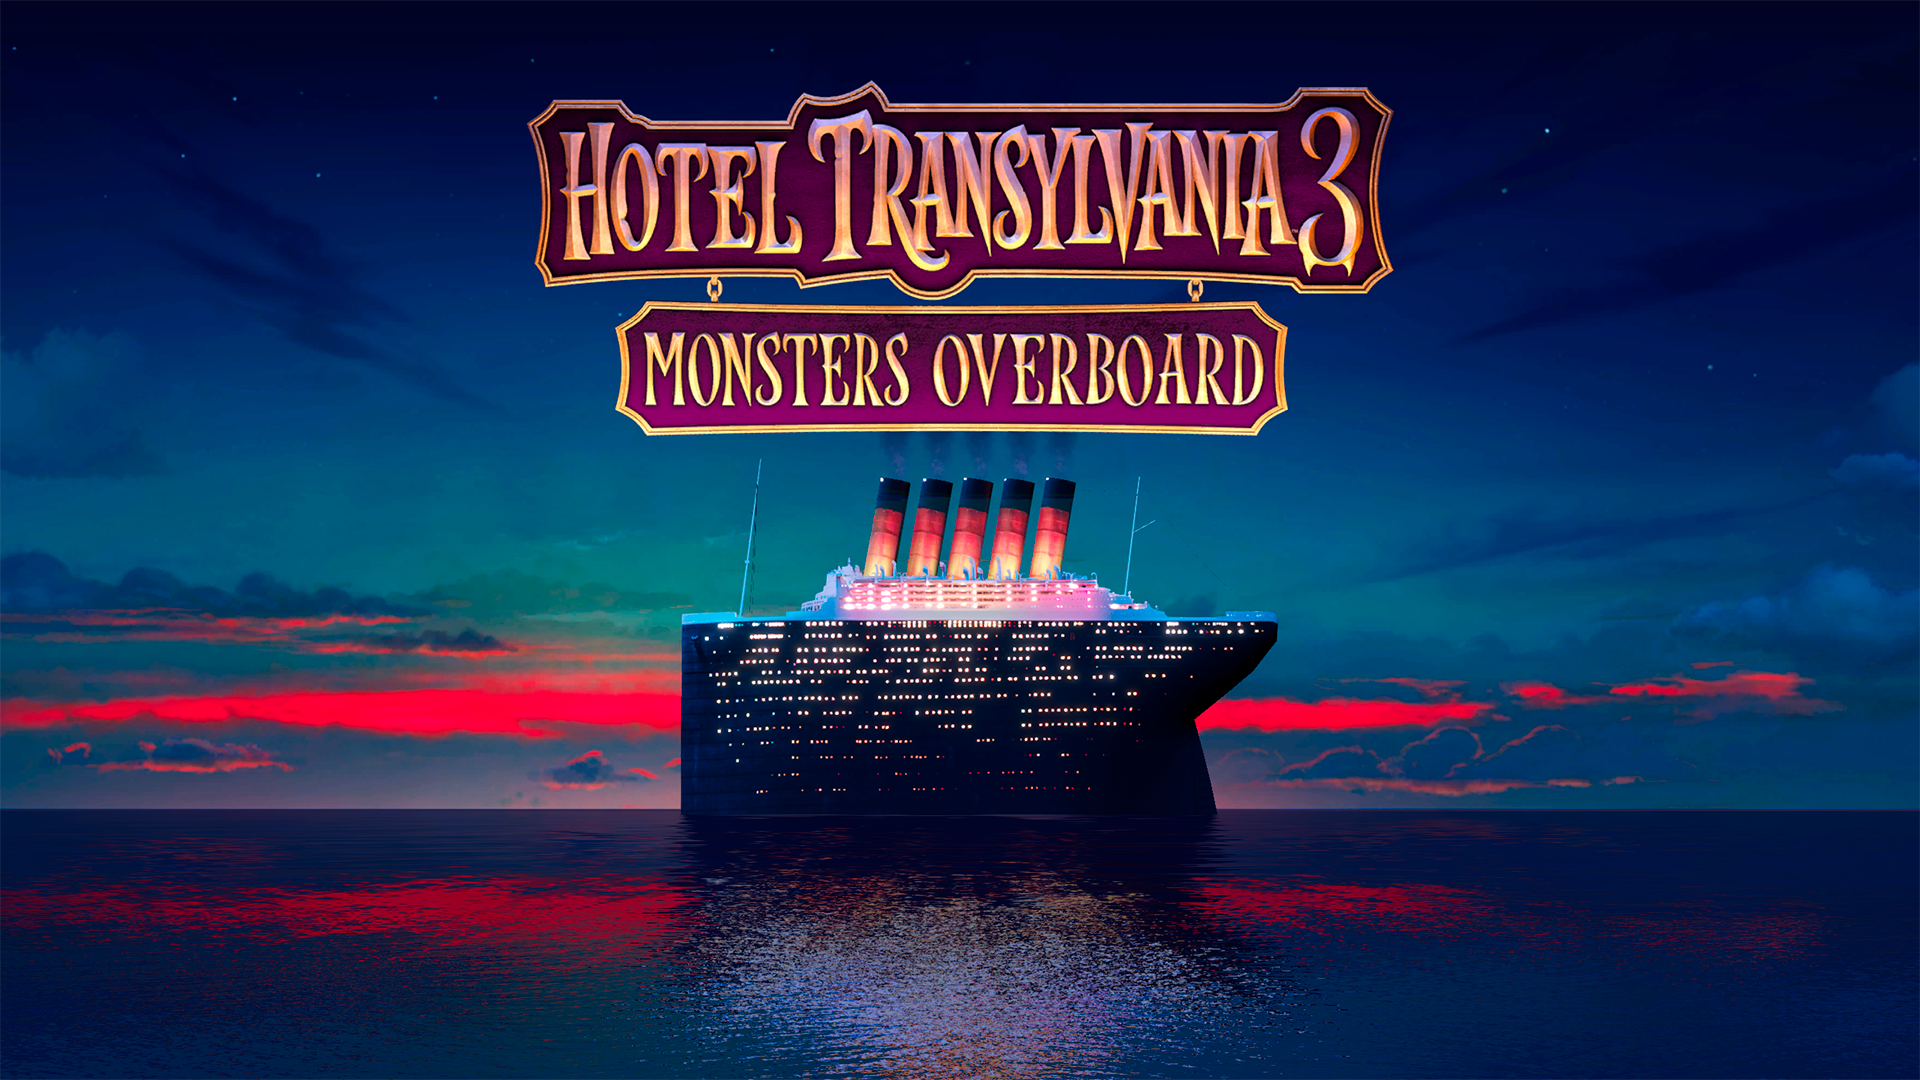 Hotel Transylvania 3 Summer Vacation Is Currently In Post Production And Scheduled For A 2018 Release Monsters Overboard Will